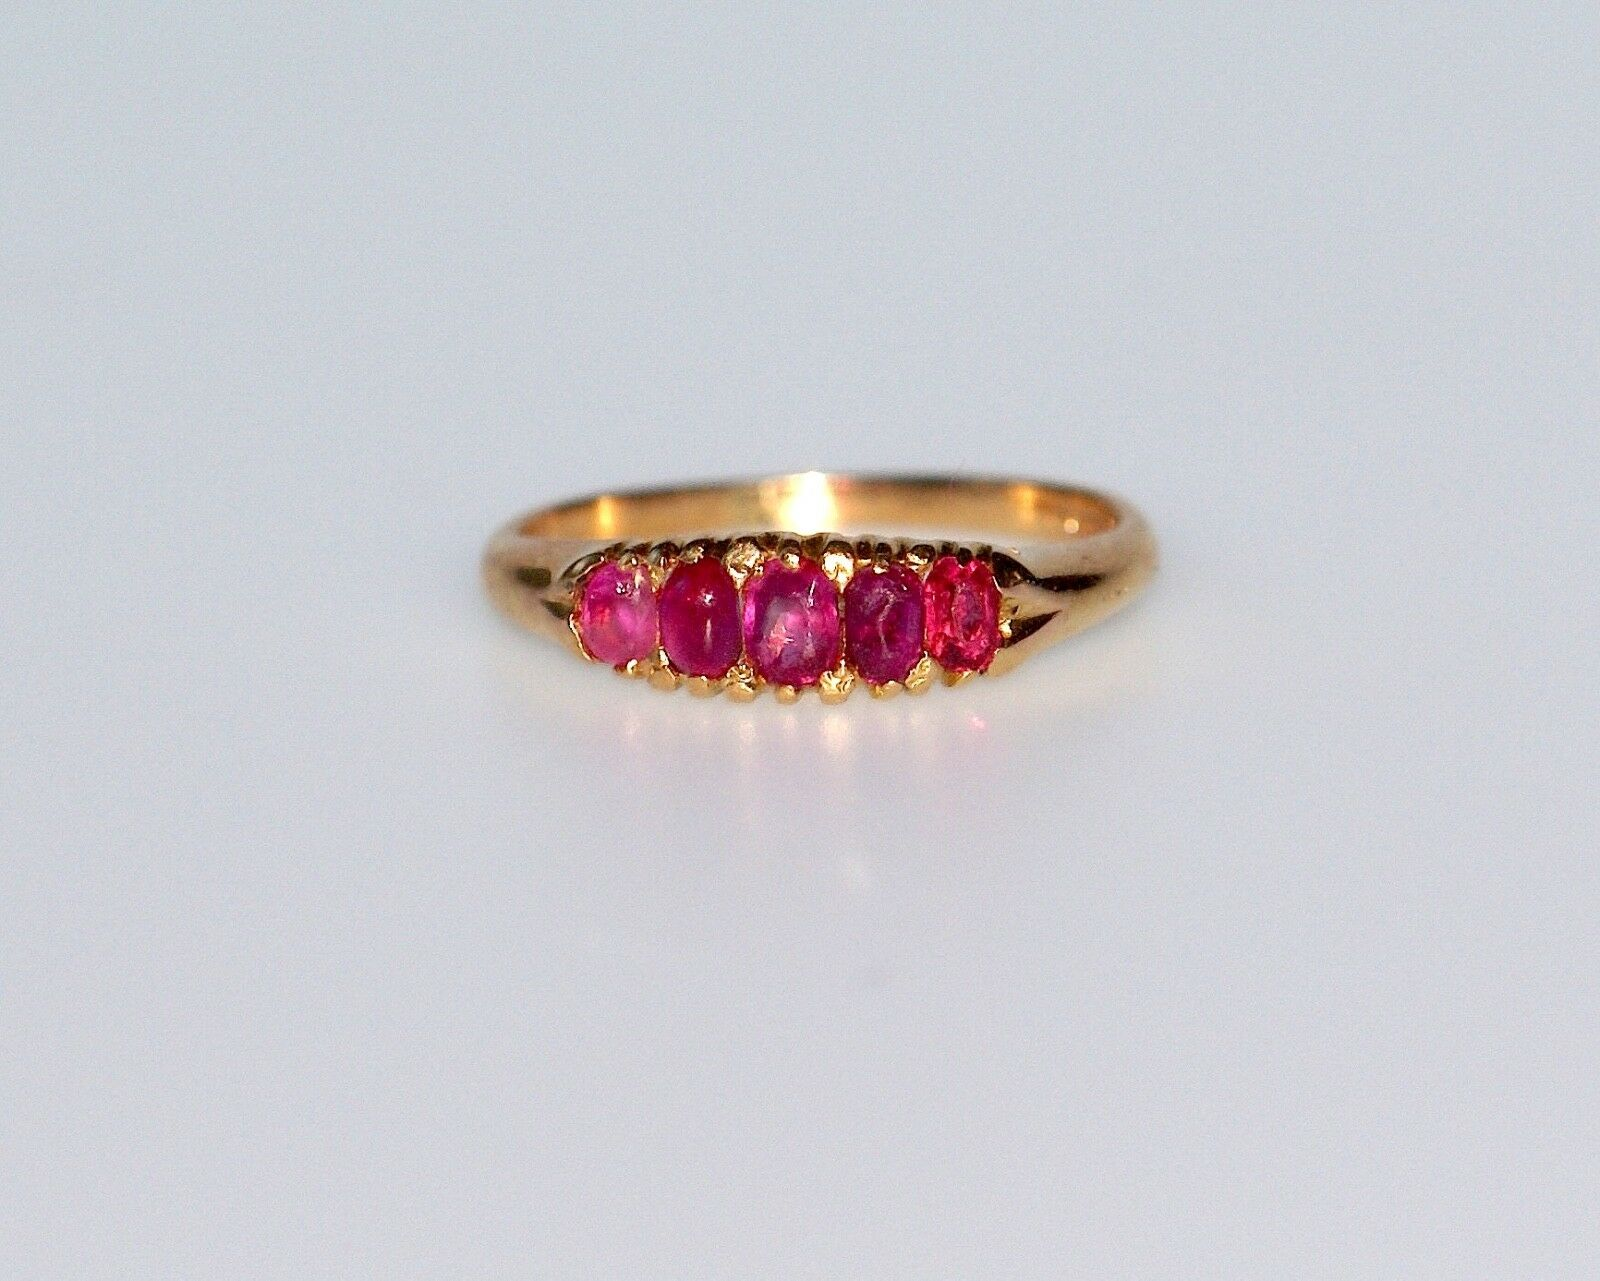 18CT gold VICTORIAN RUBY RING SIZE L.75 FULLY HALLMARKED MAKE ENG WORK OF ART